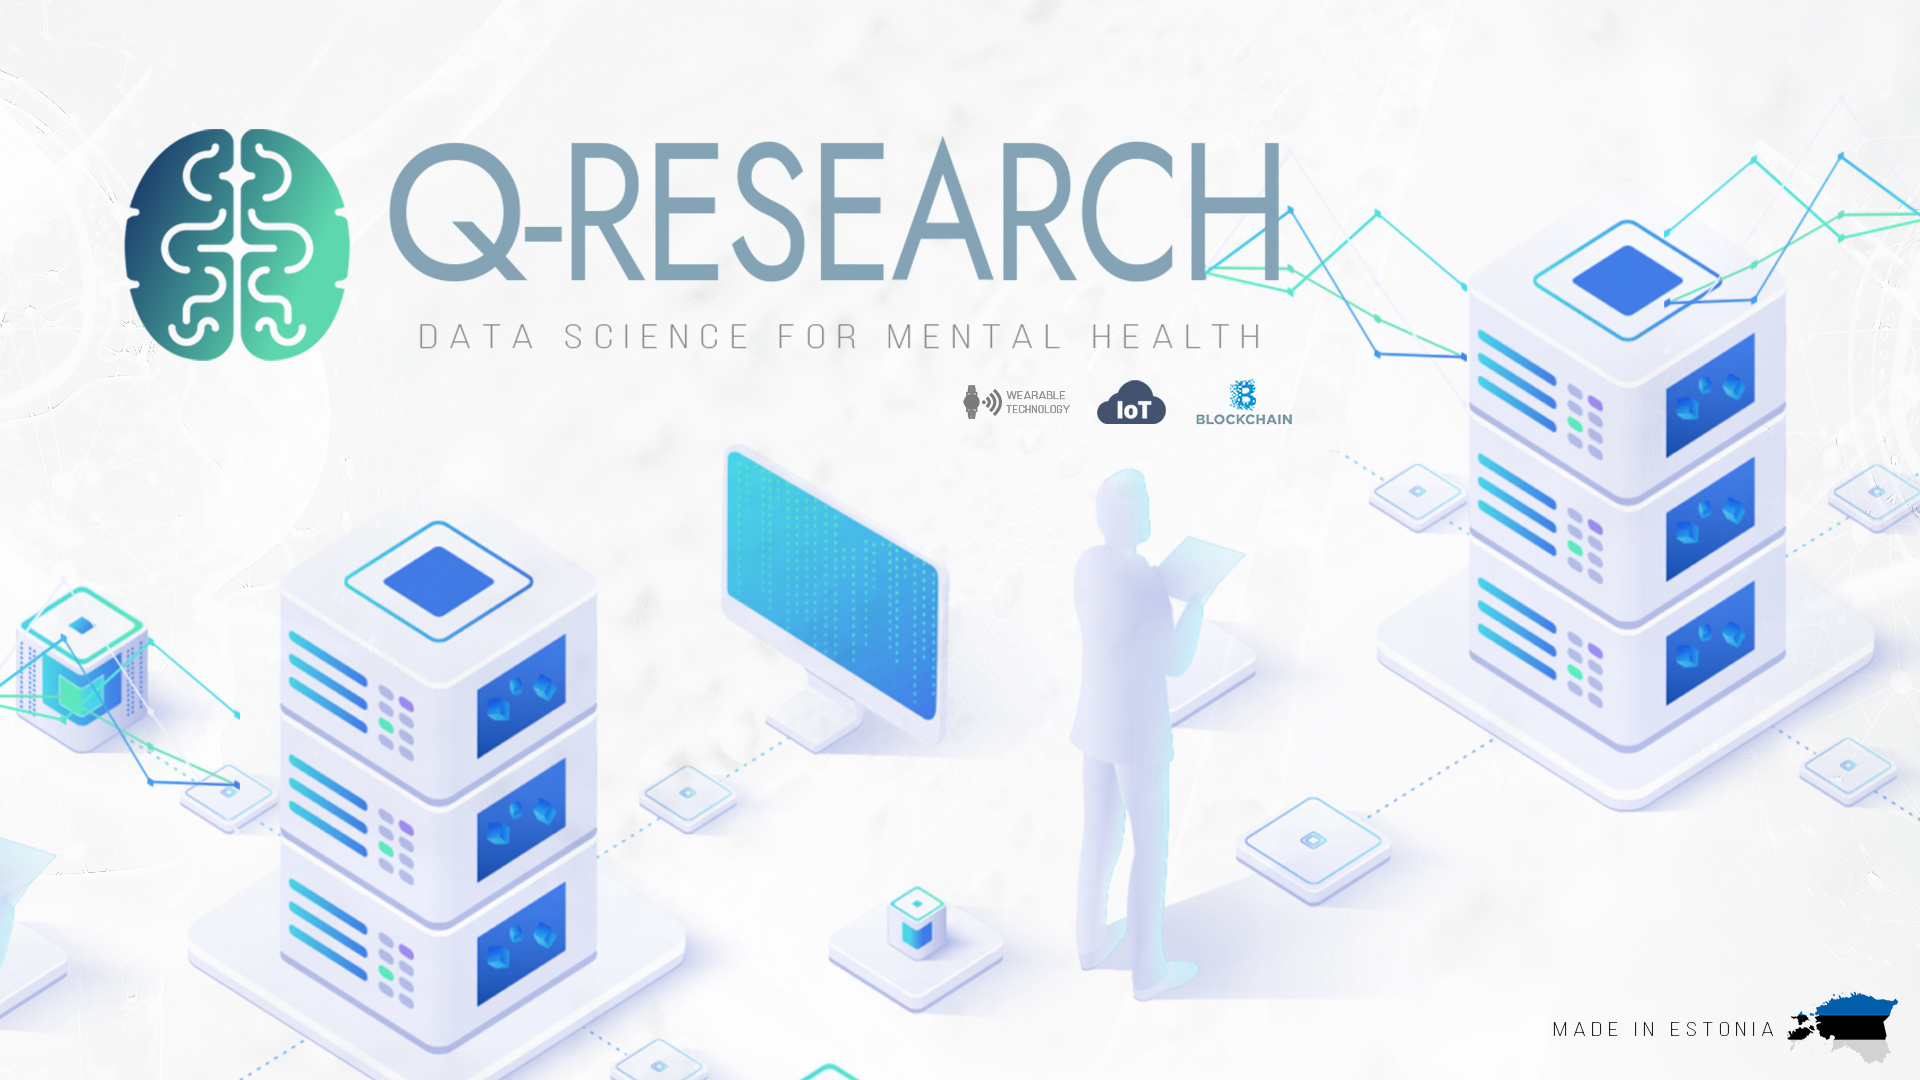 Q-Research banner image